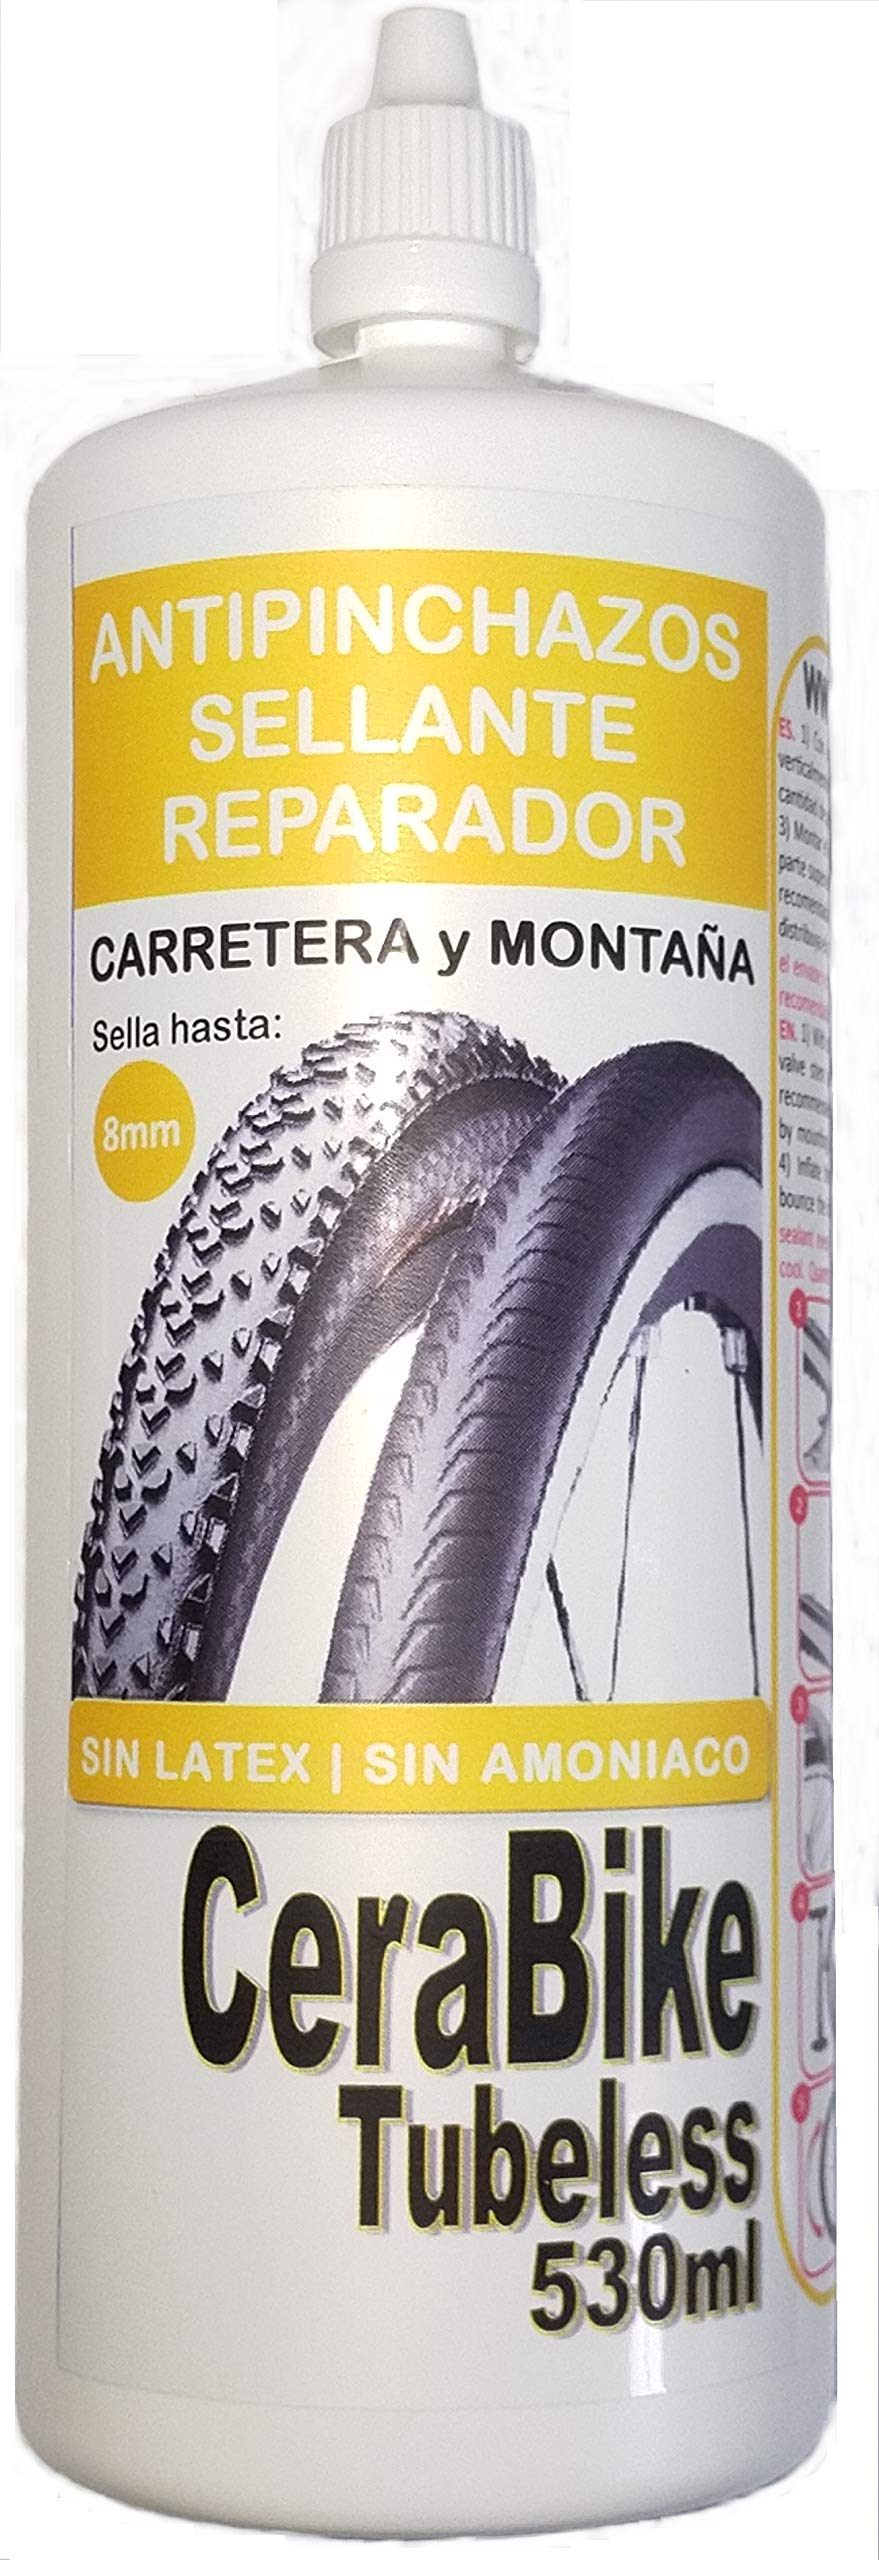 CeraBike TUBELESS Sellante Antipinchazos 530 ml. Válido para ...